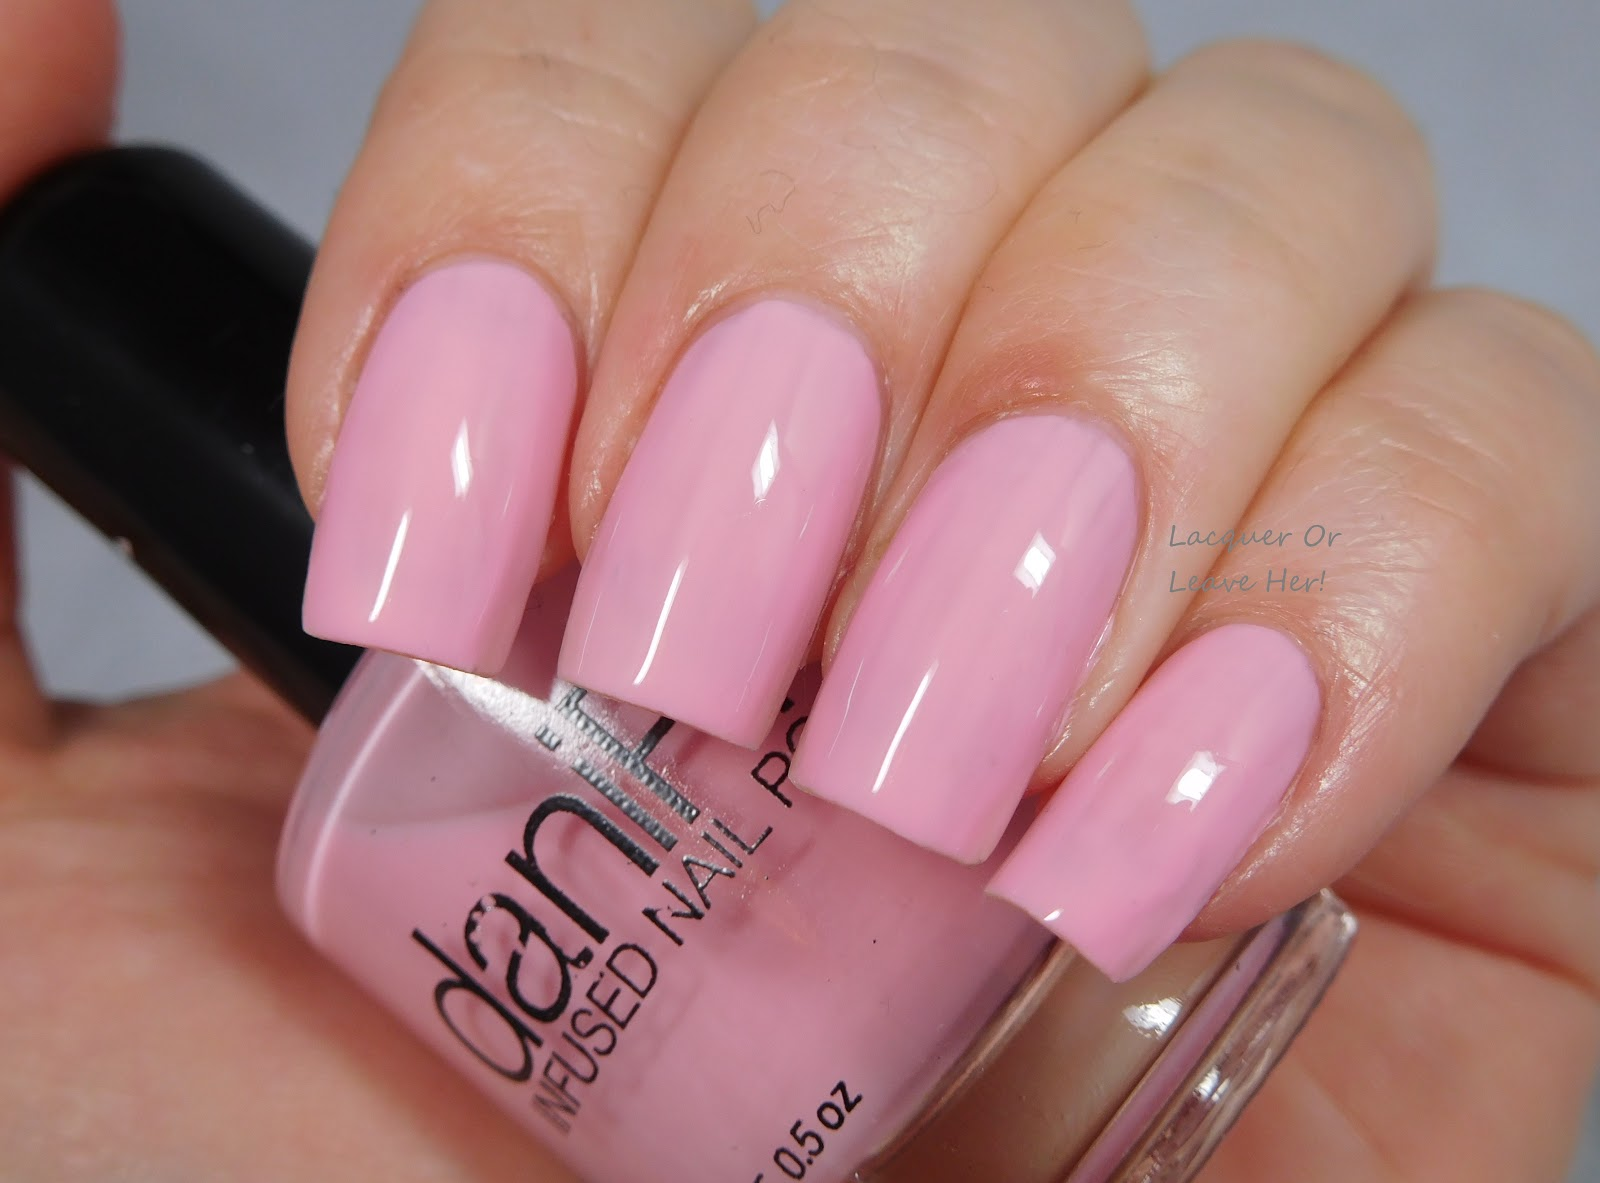 Lacquer or Leave Her!: Review: daniPro Infused Nail Polishes